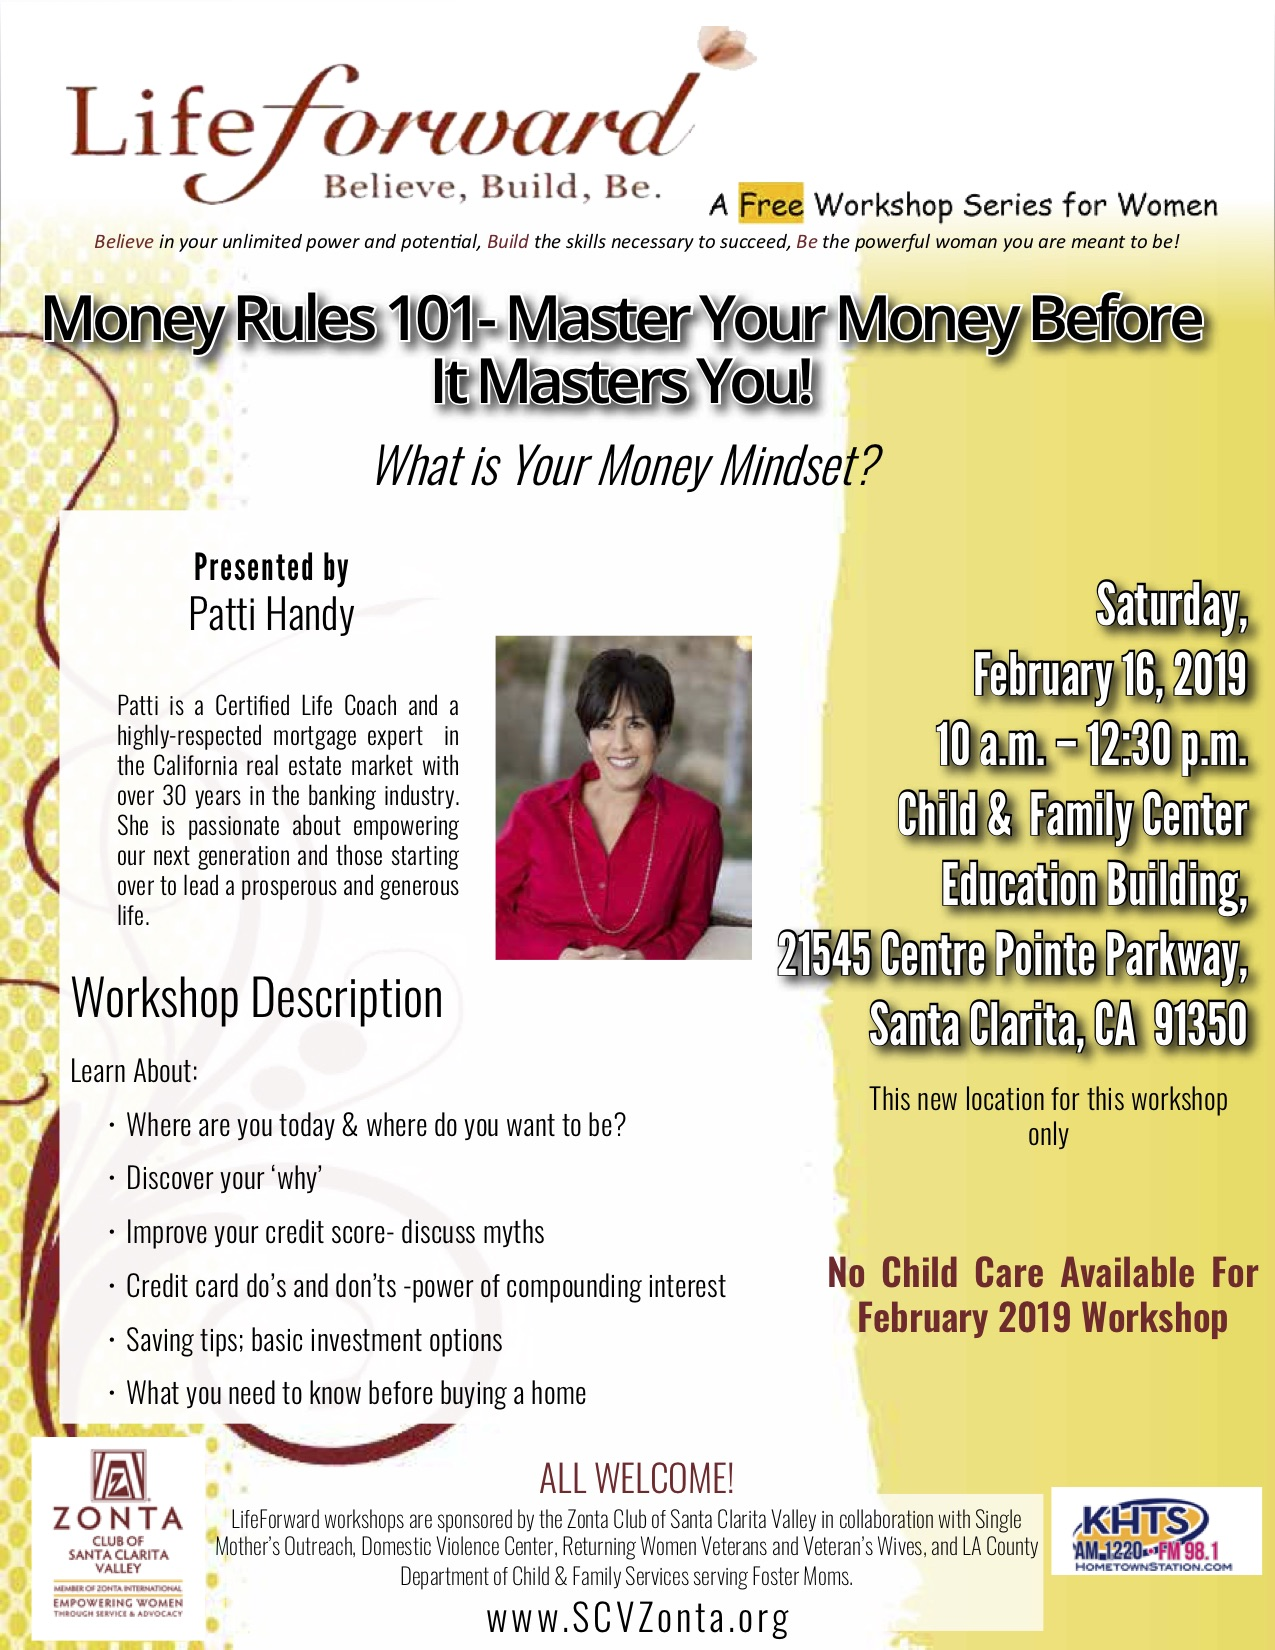 Money Rules 101-Master Your Money Before it Masters You